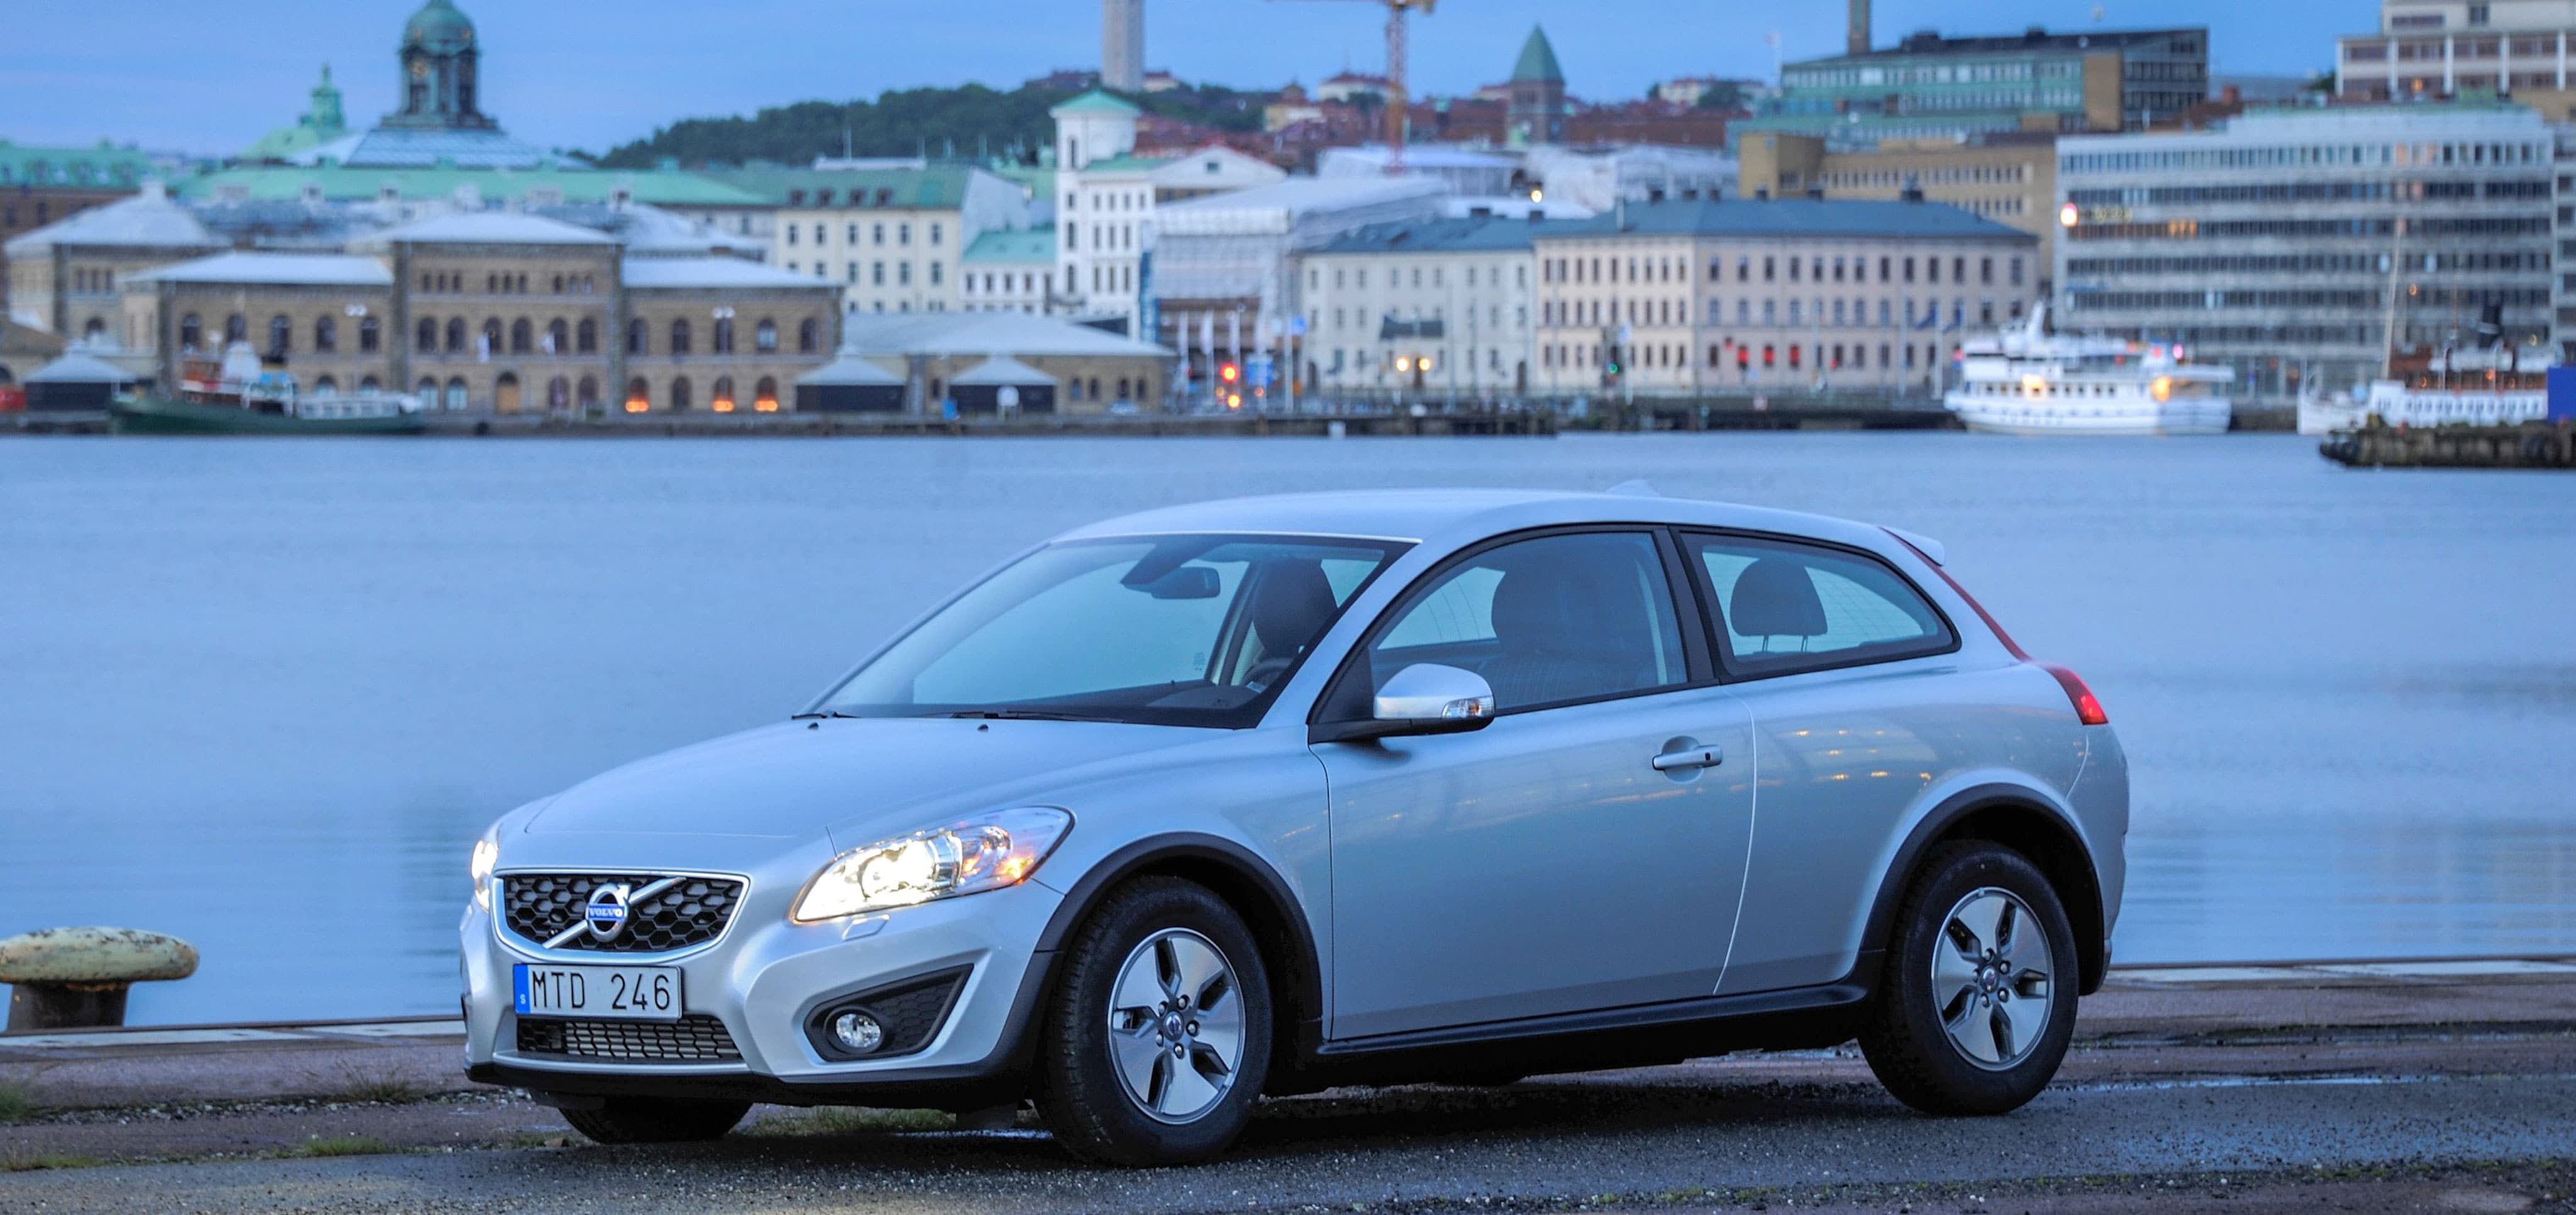 Volvo C30 | Previous Models | Volvo Cars